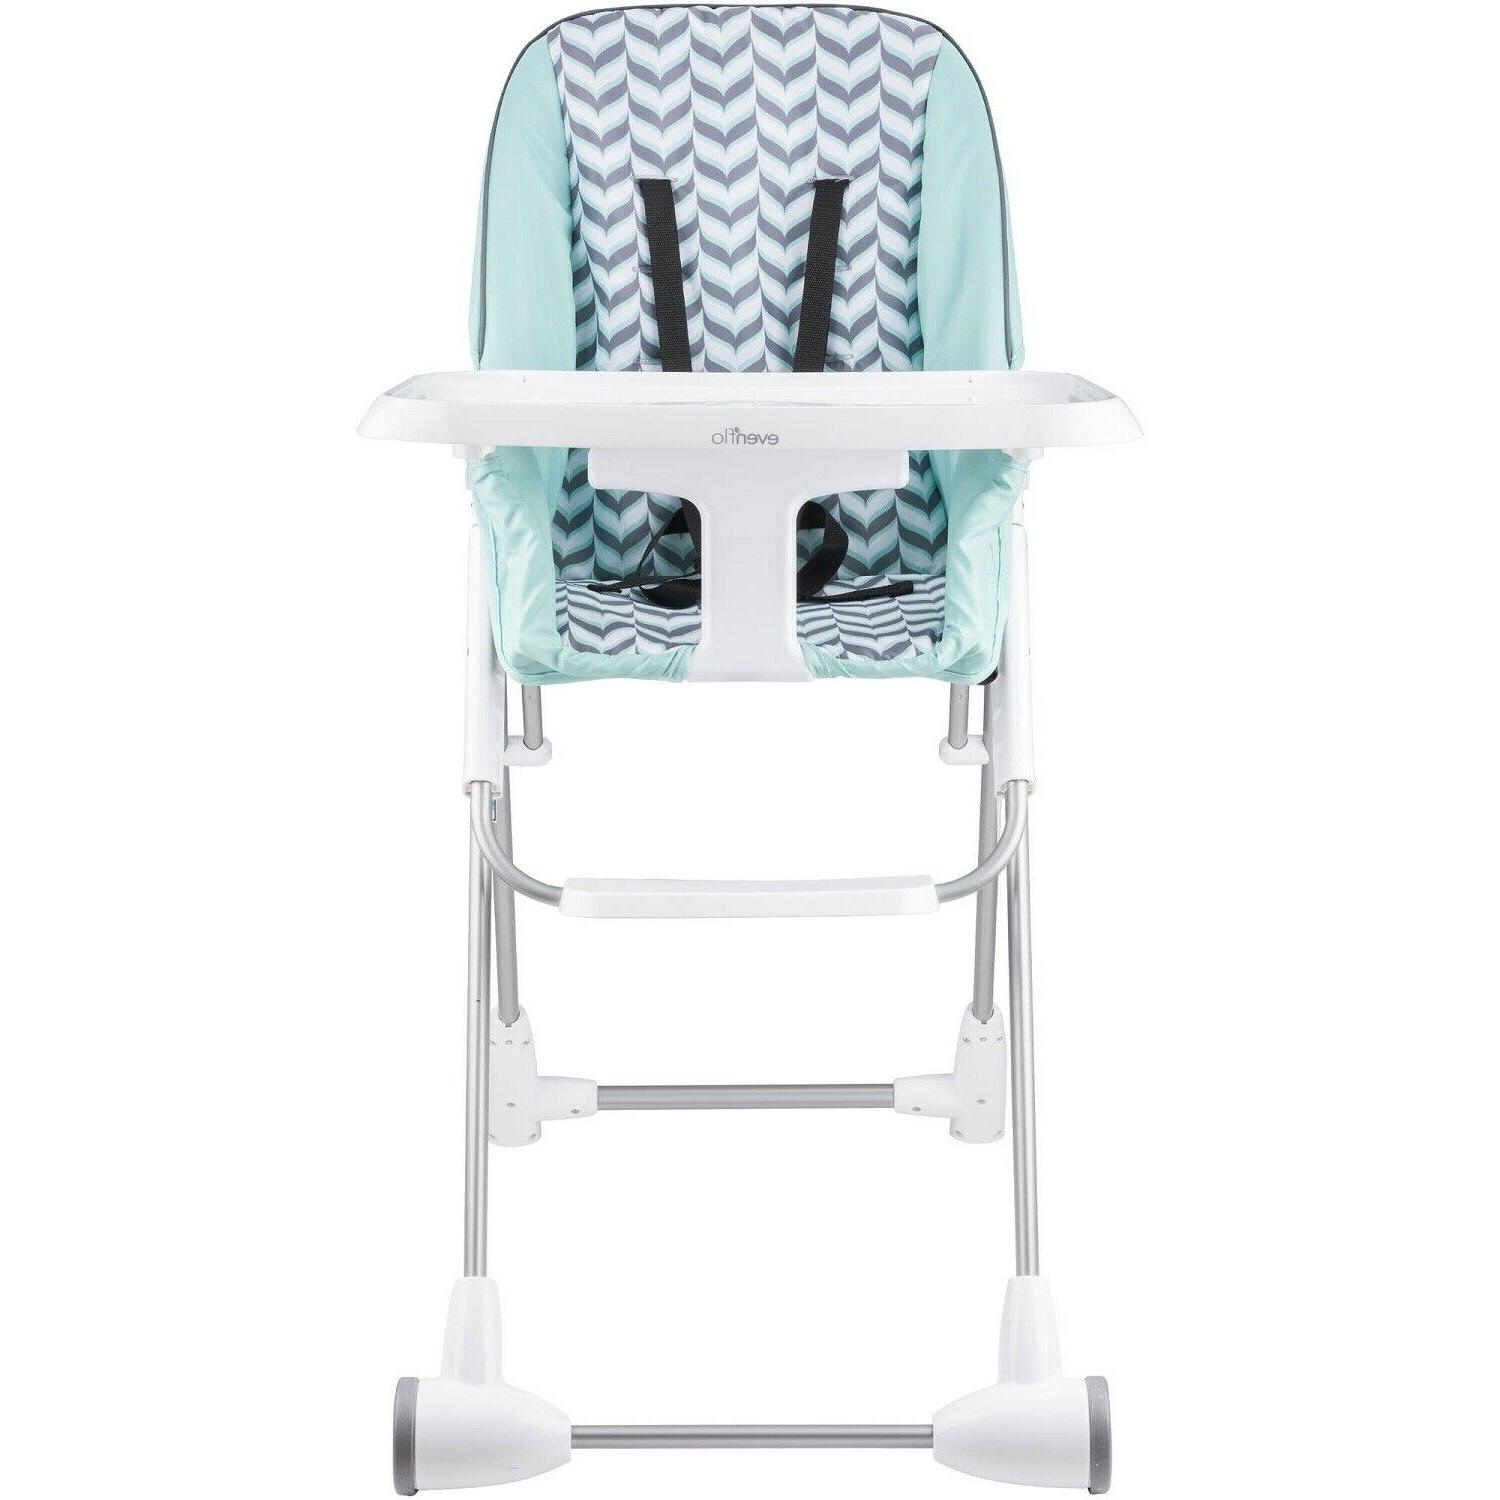 Infant Playard Swing Chair Baby Car Seat Travel System Set